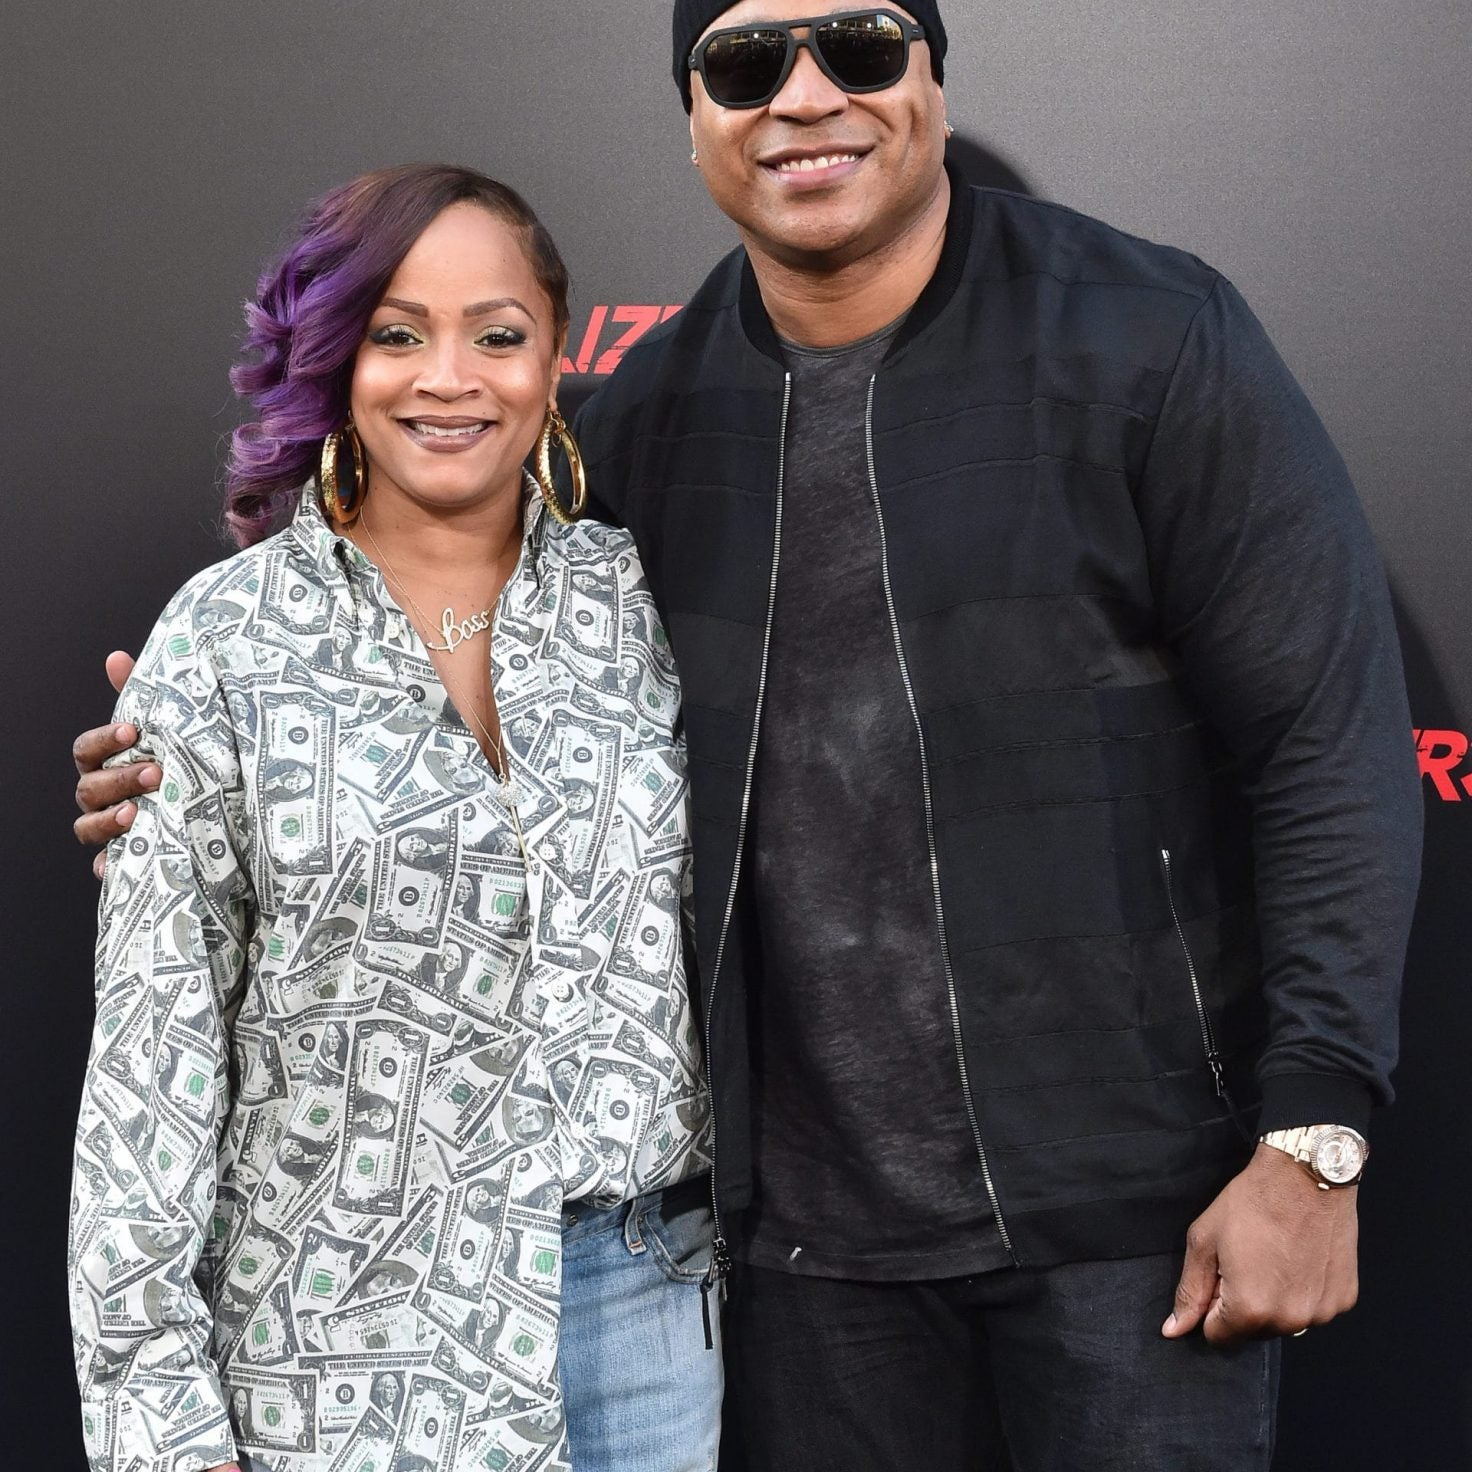 LL Cool J and His Wife Simone Smith Team Up For The Beat Cancer Like A Boss Campaign